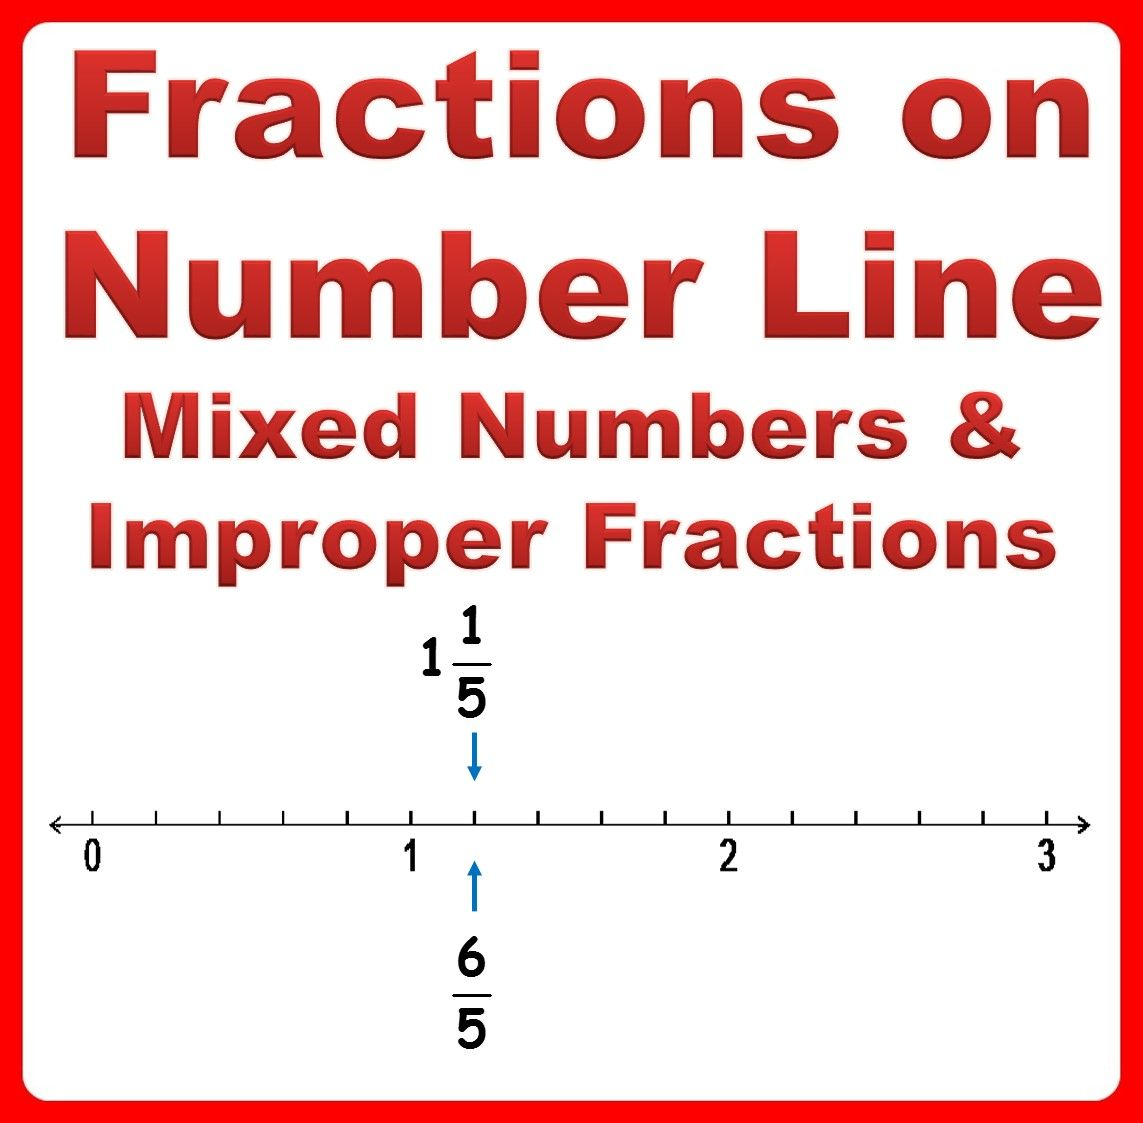 Fractions on Number Line - Mixed Numbers and Improper Fractions ...